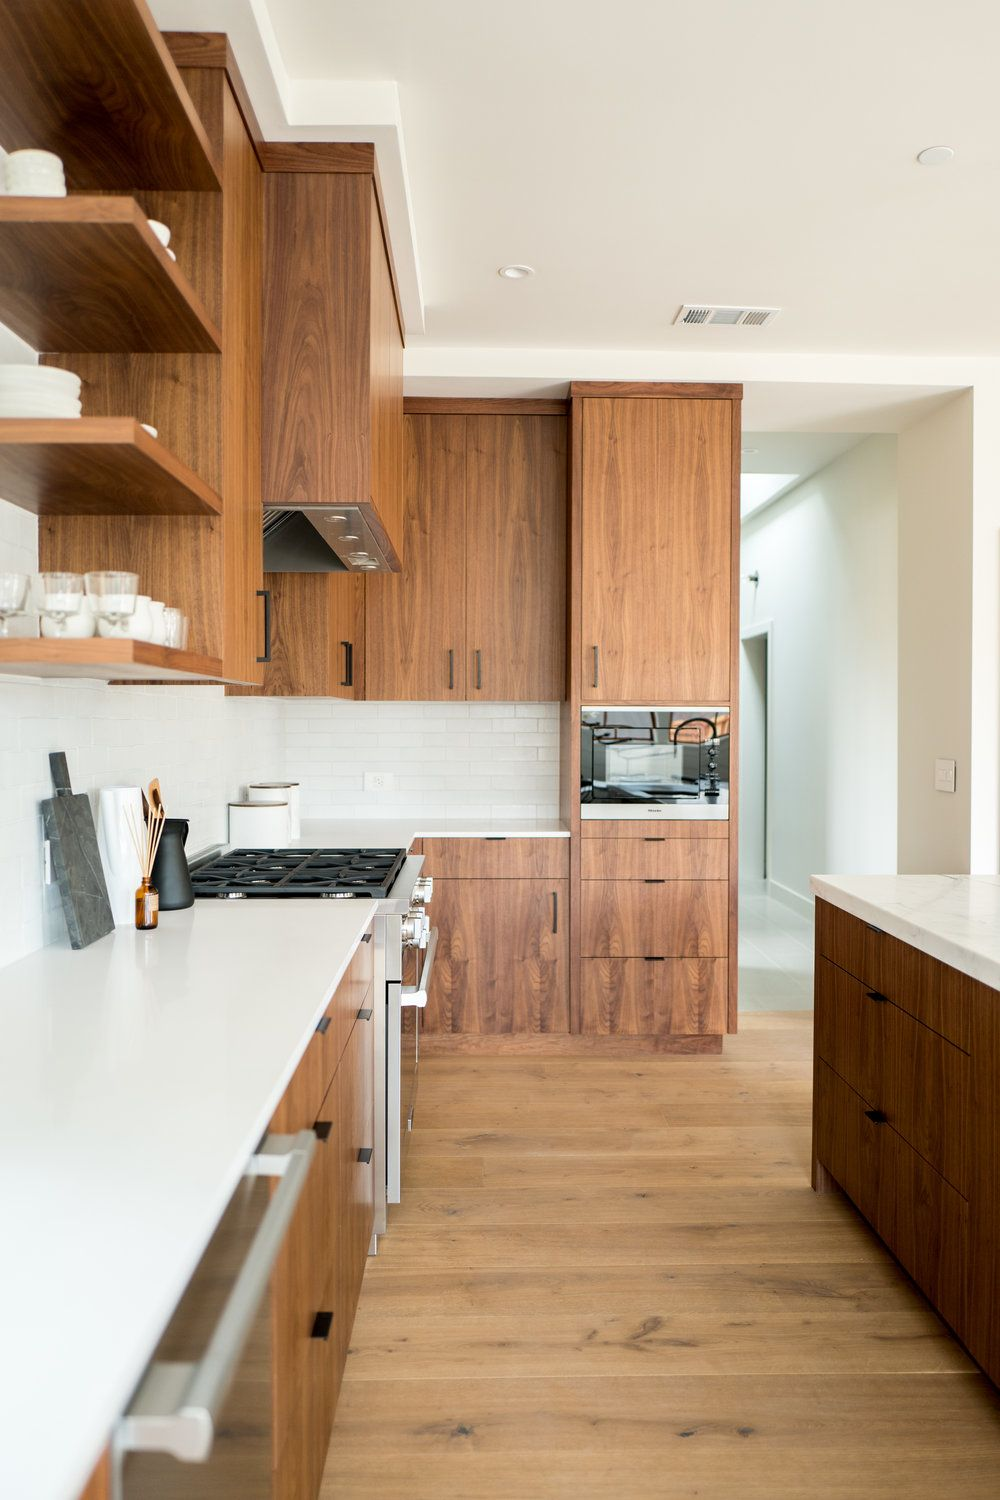 Mid Century Style Cabinetry In The Kitchen With Walnut Cabinets